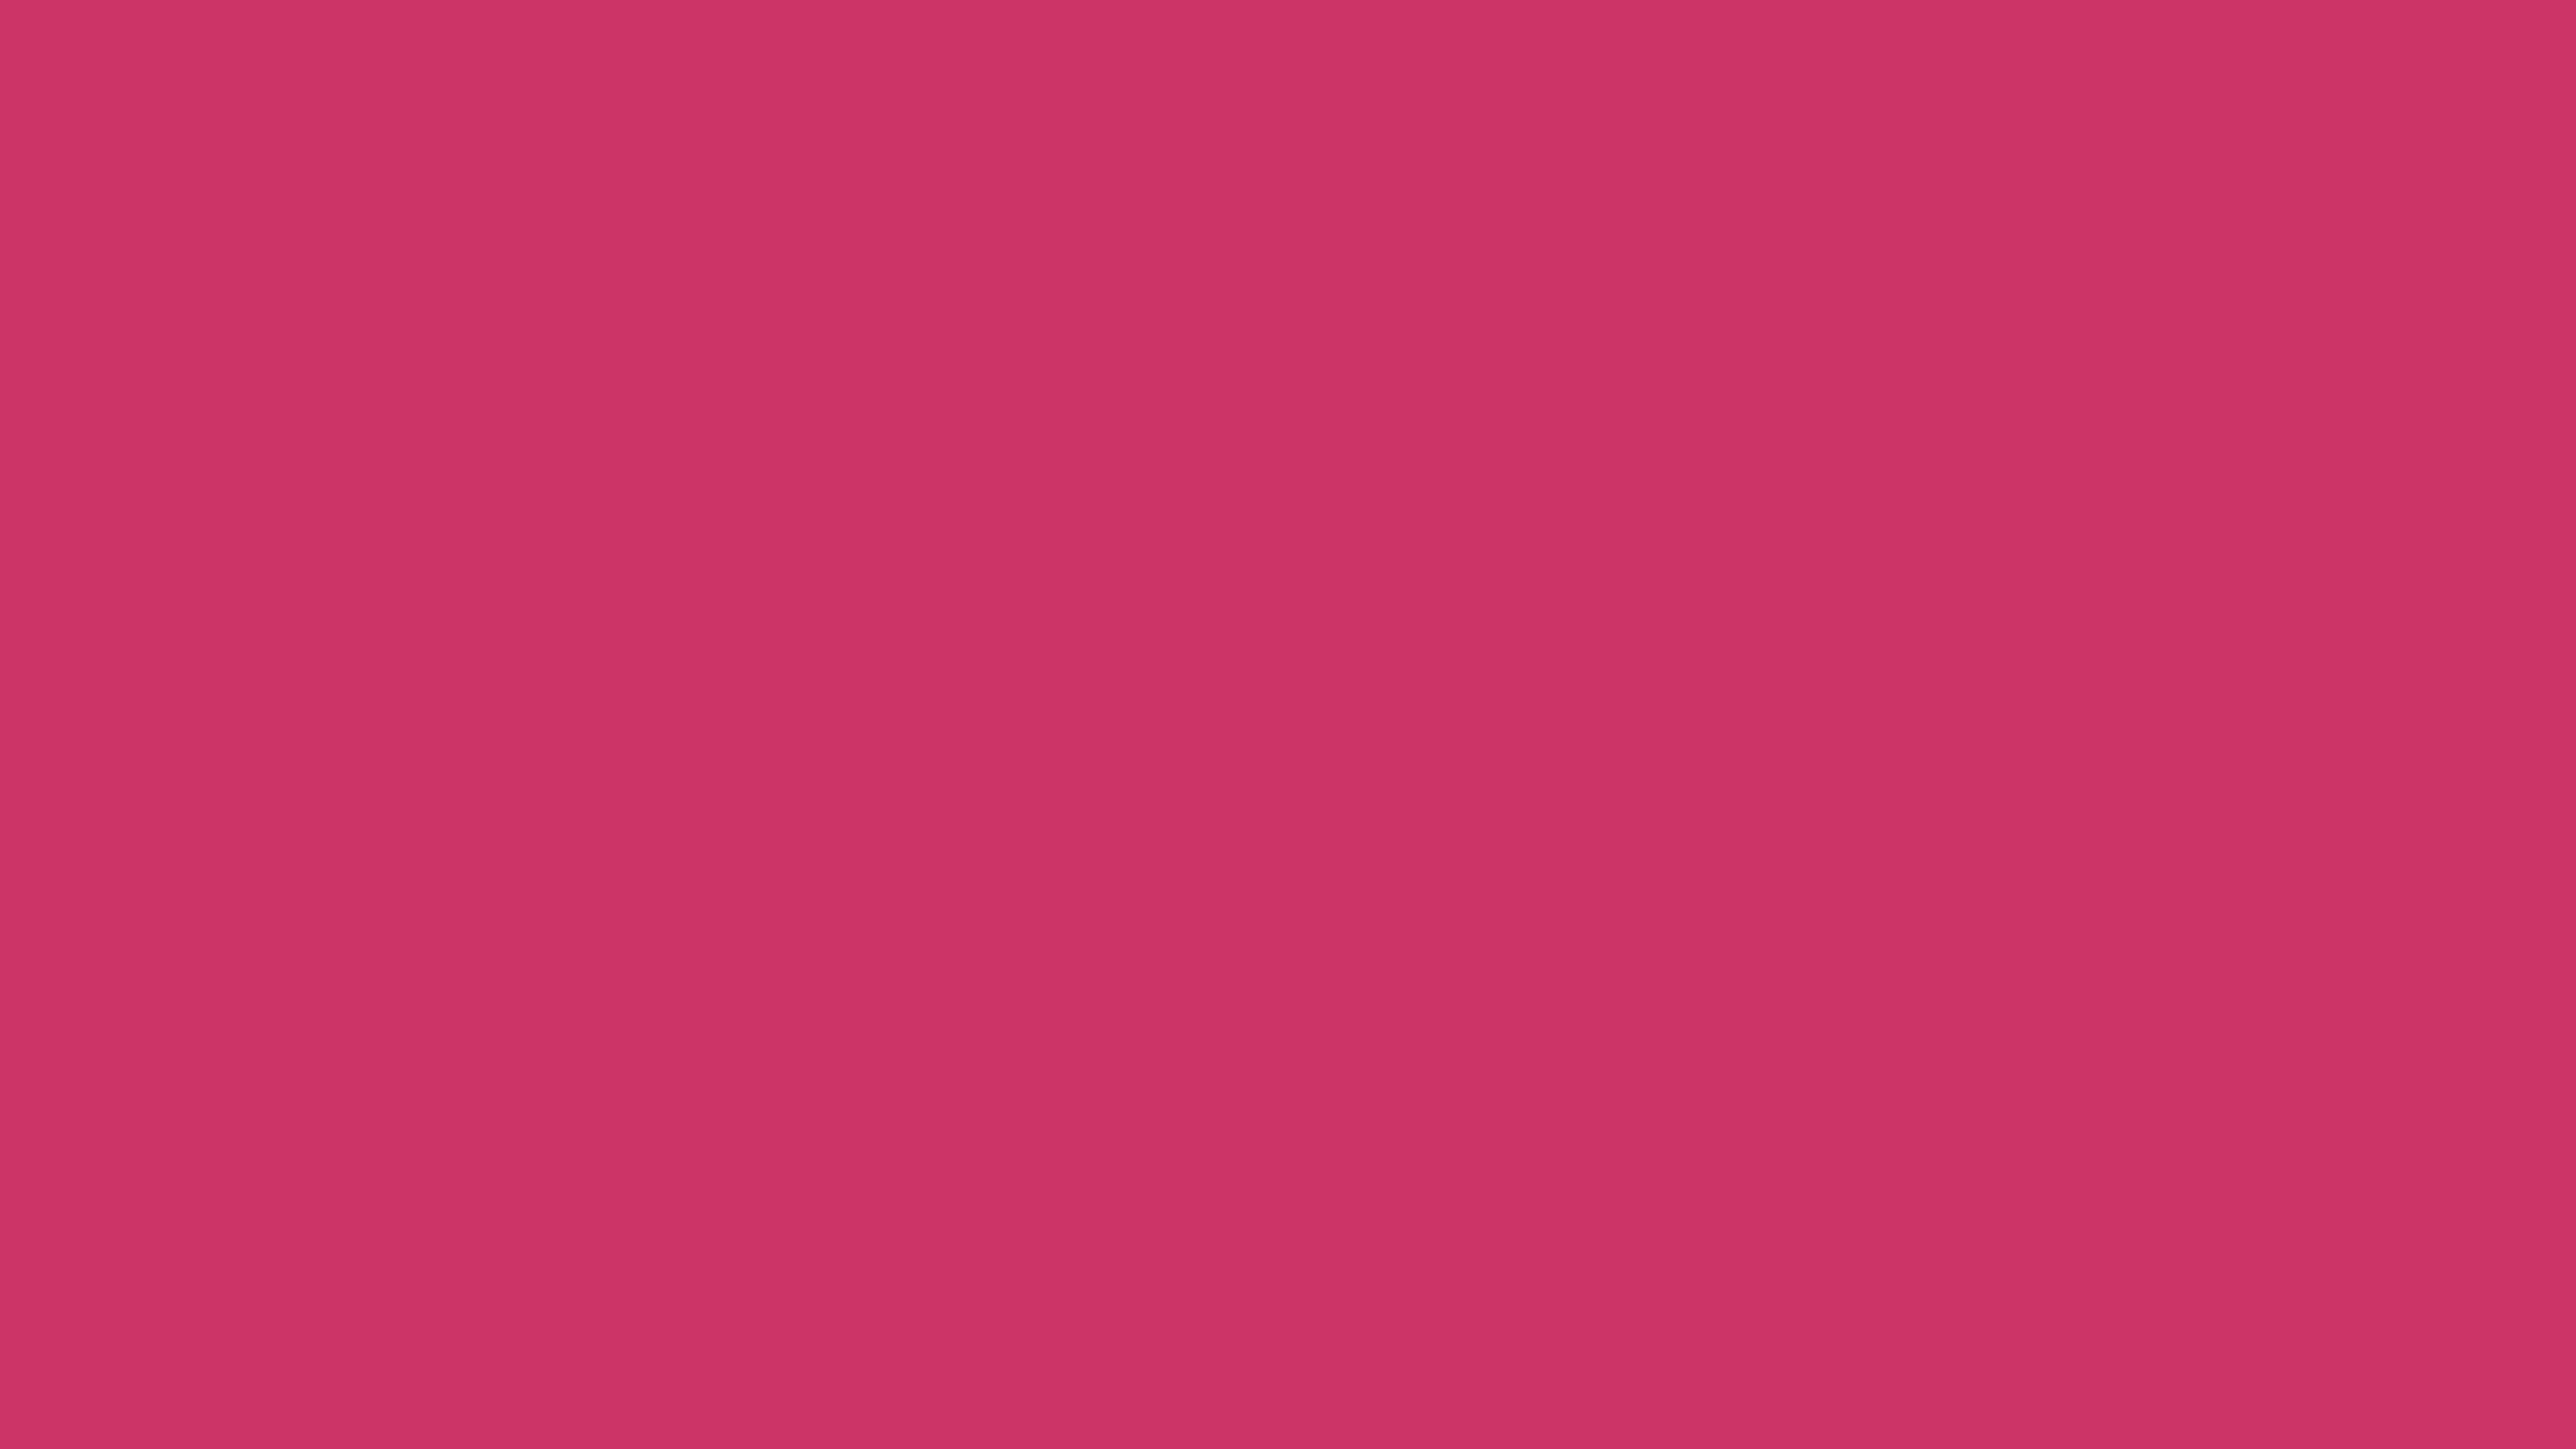 5120x2880 Steel Pink Solid Color Background